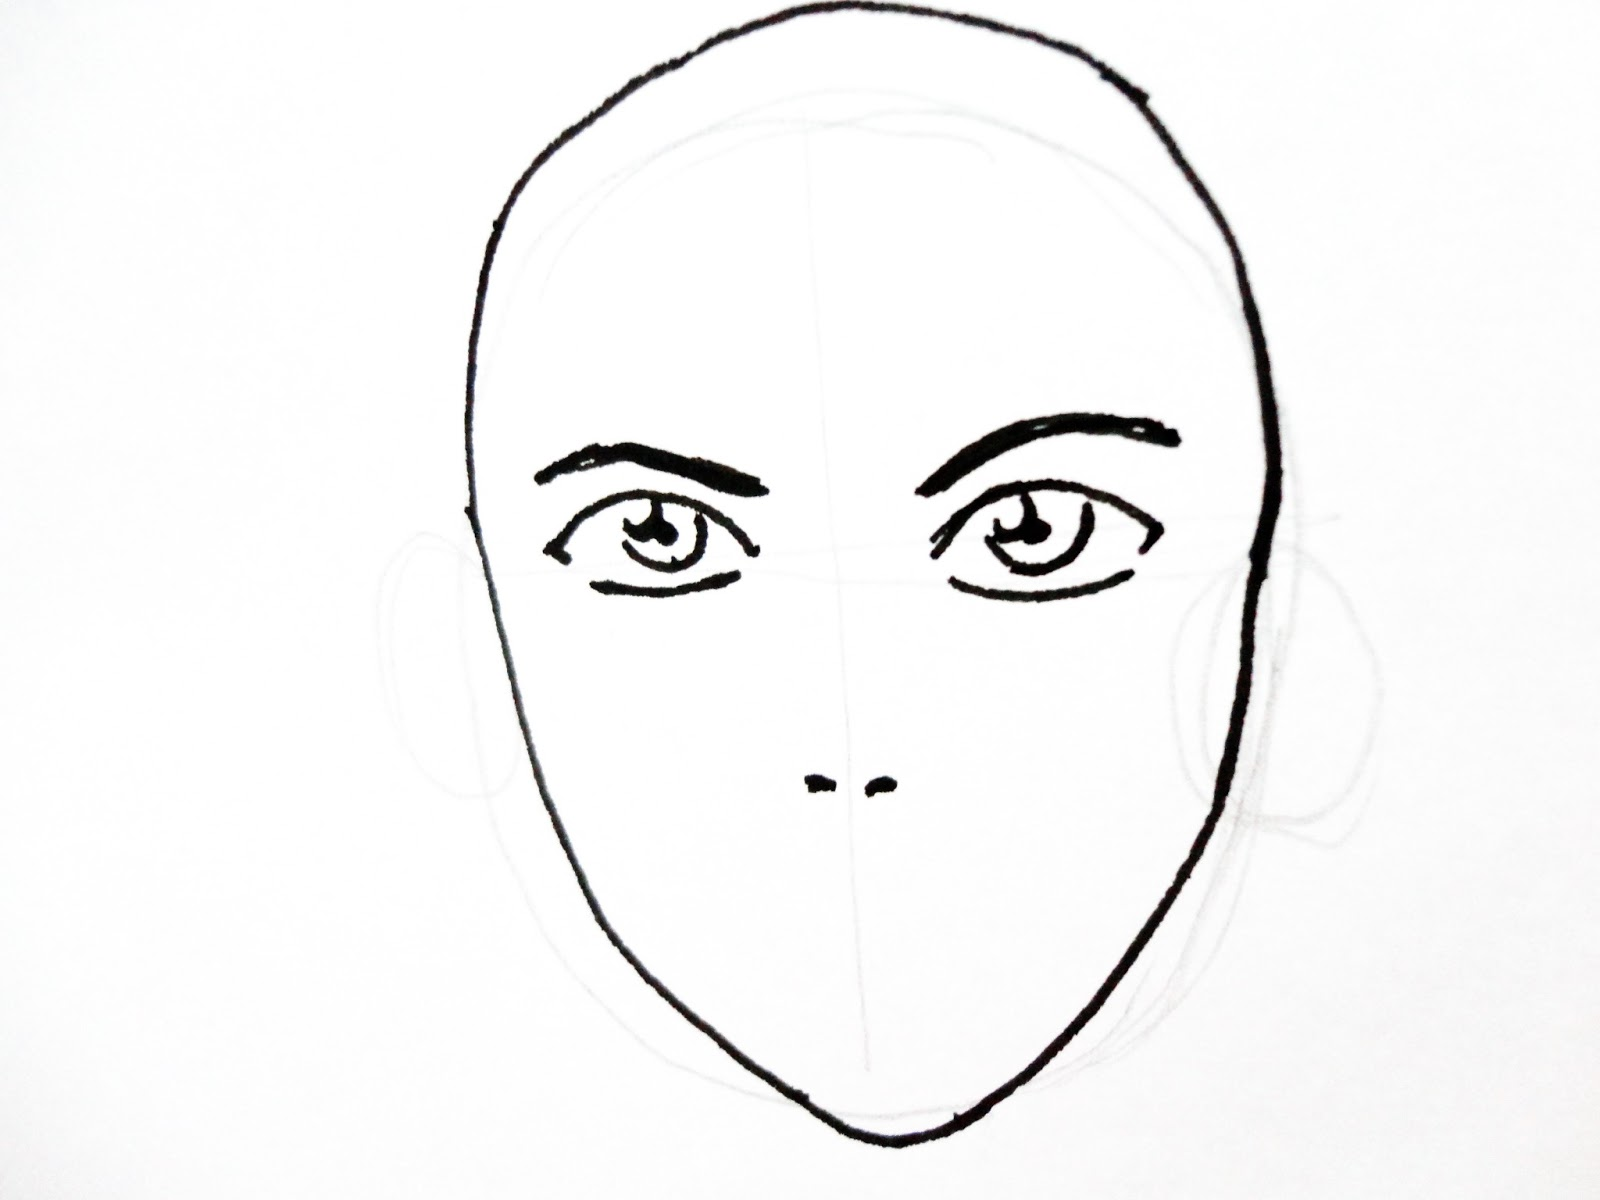 For Eyes Nose Mouth Coloring Pages